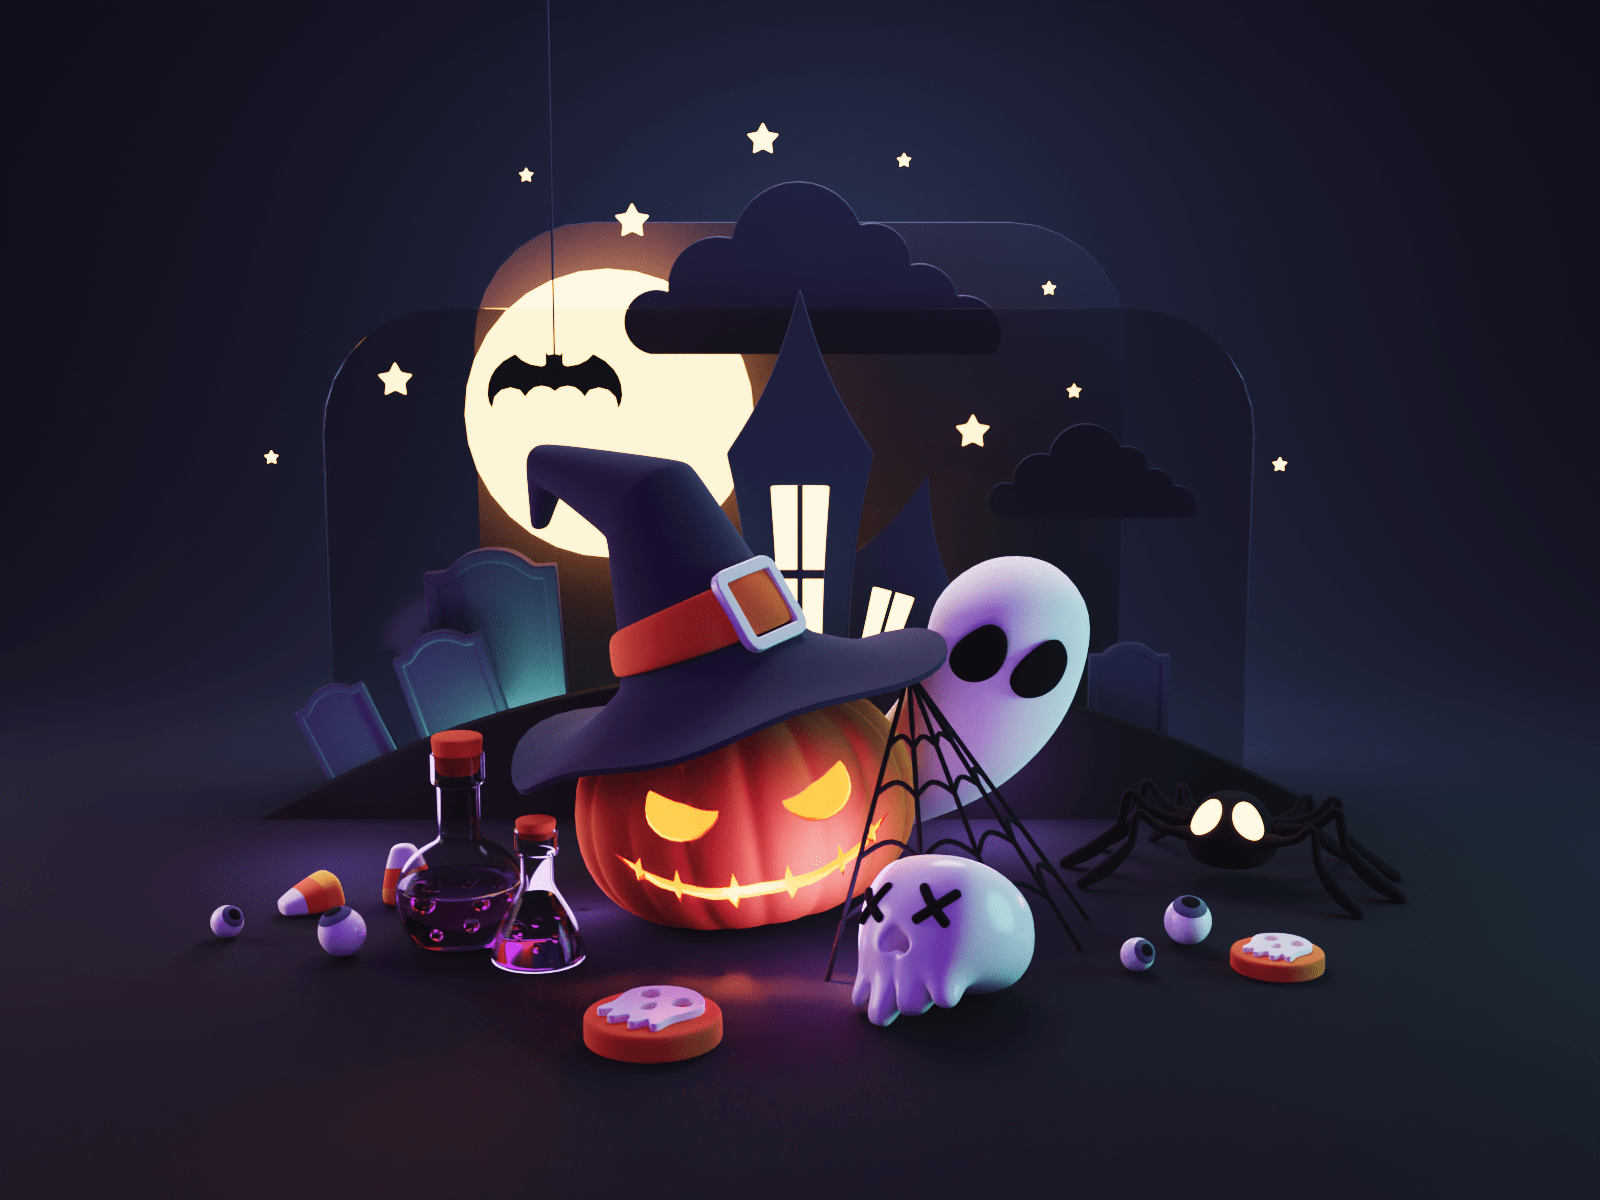 Trick or Treat! by Roman Kl�o